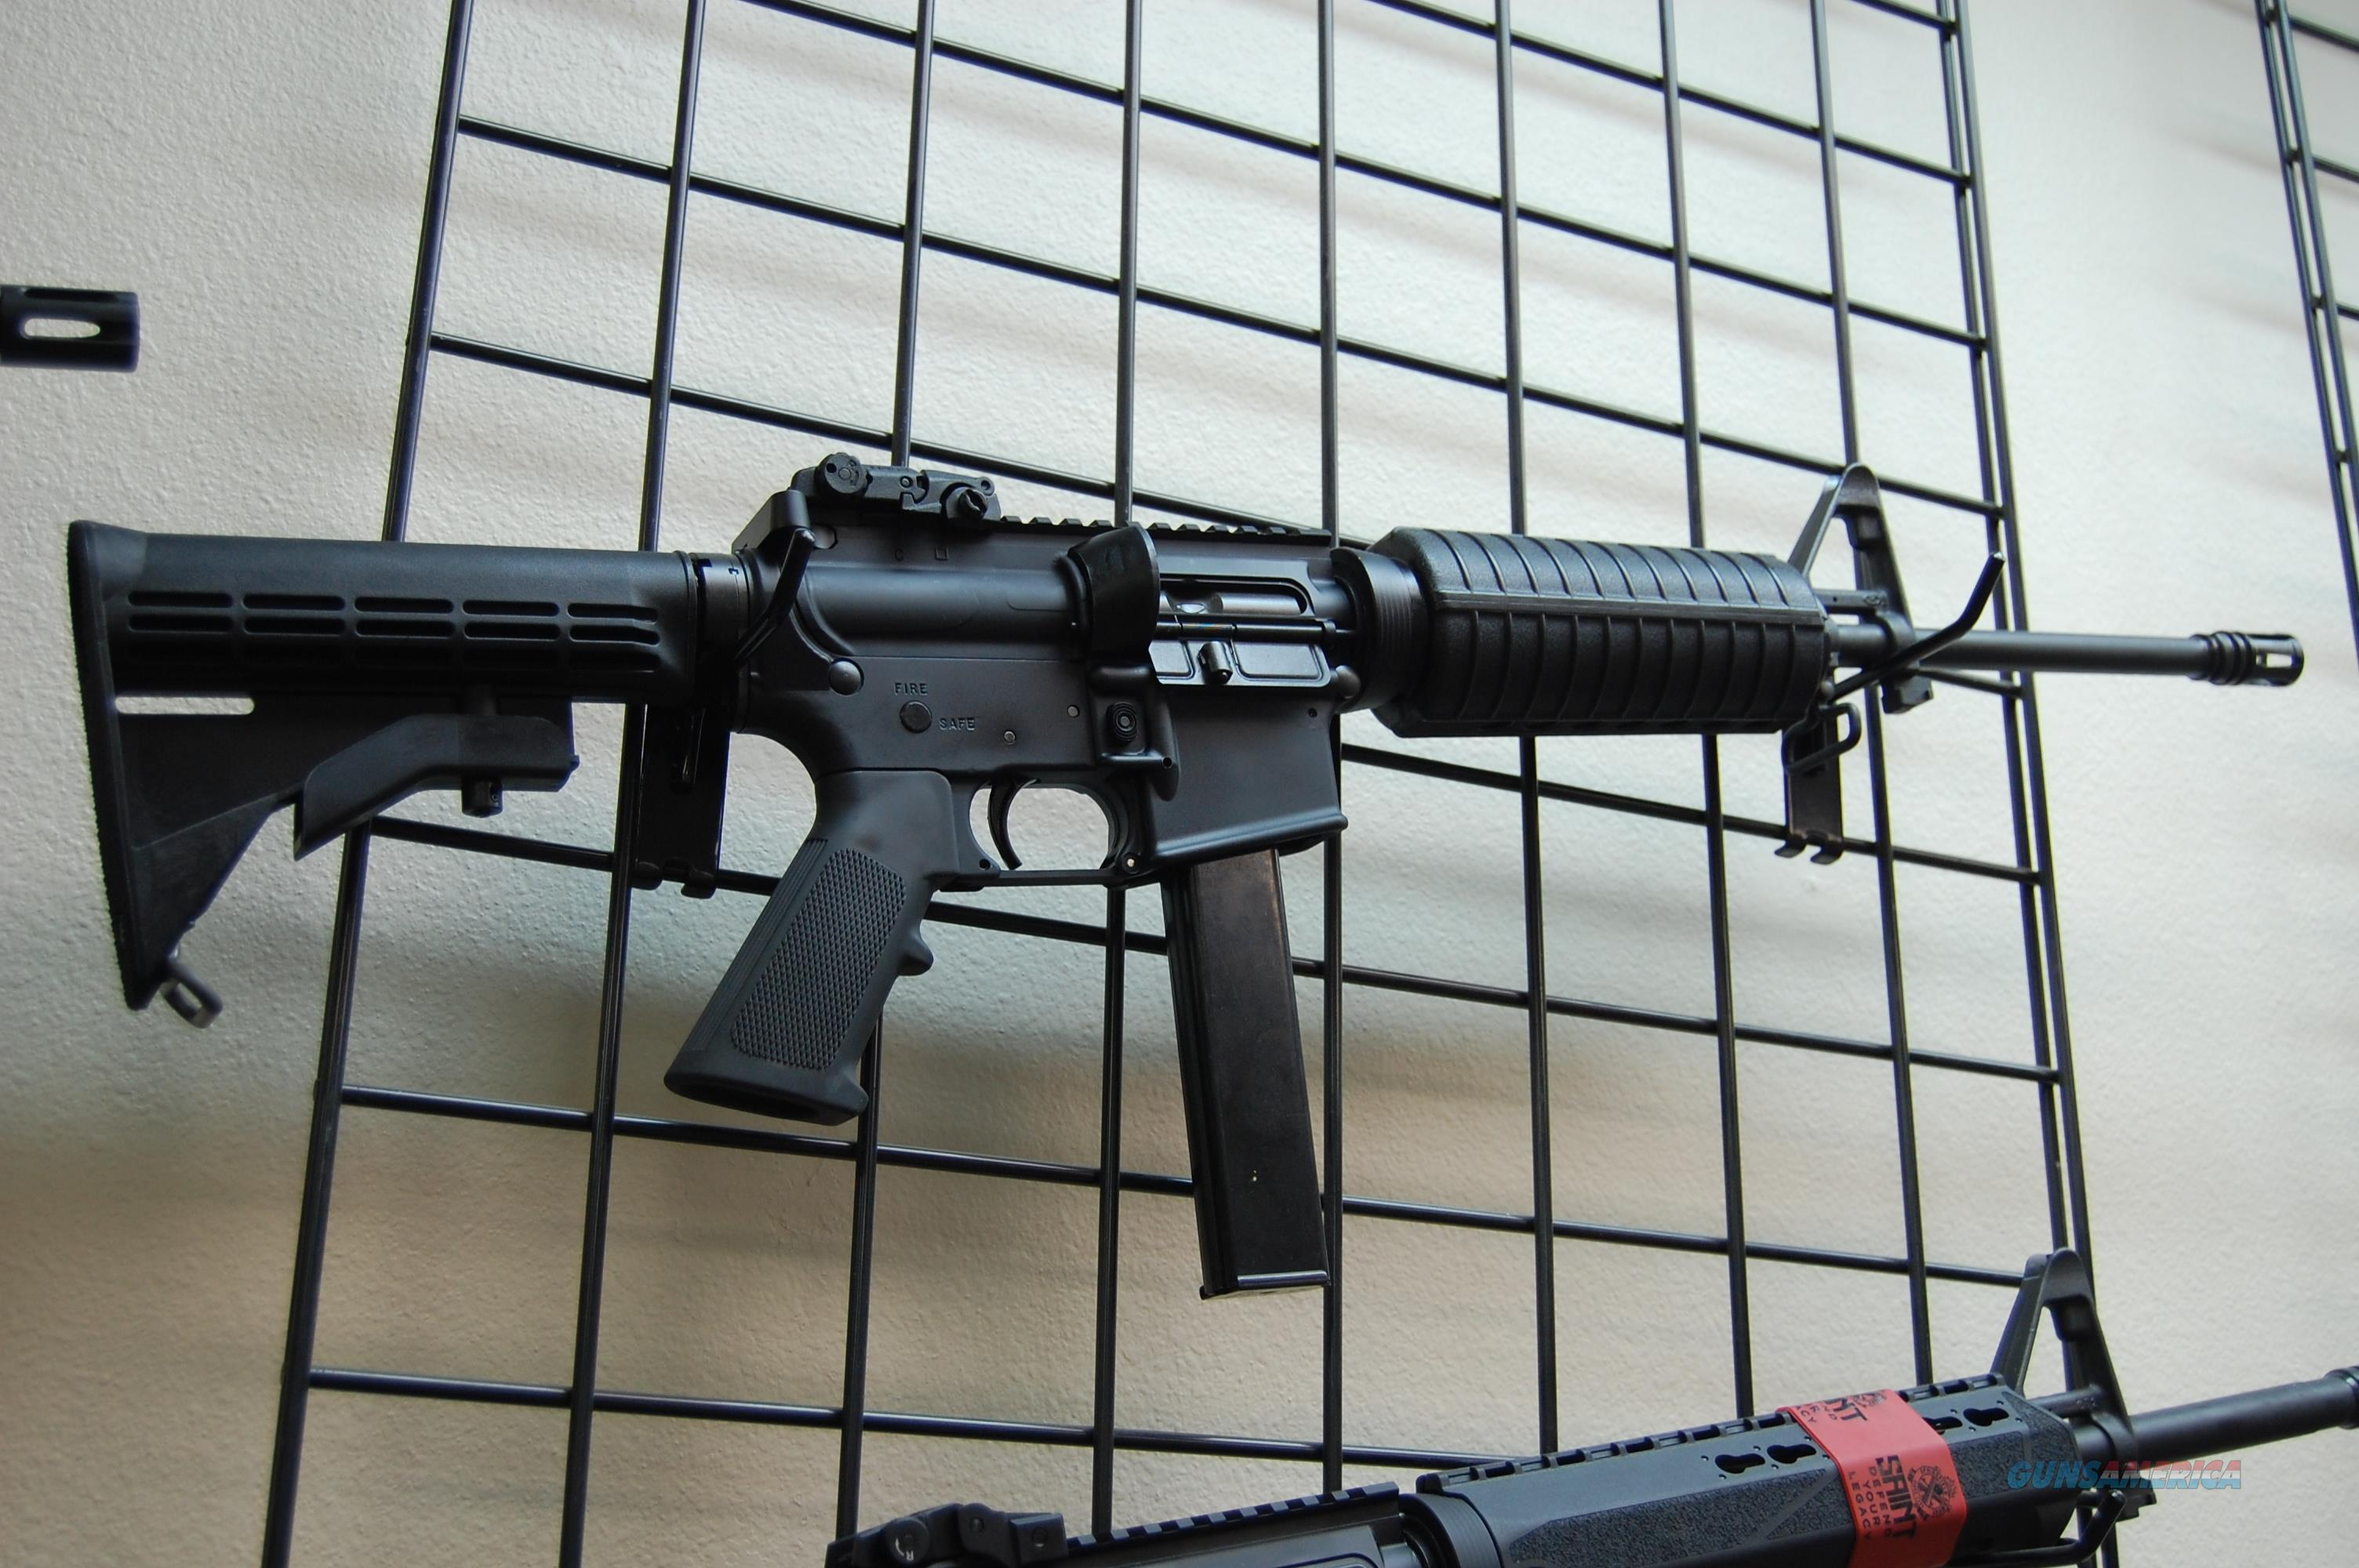 COLT AR6951 AR-15 CAR 9MM 16 32R MT AR15  Guns > Rifles > Colt Military/Tactical Rifles